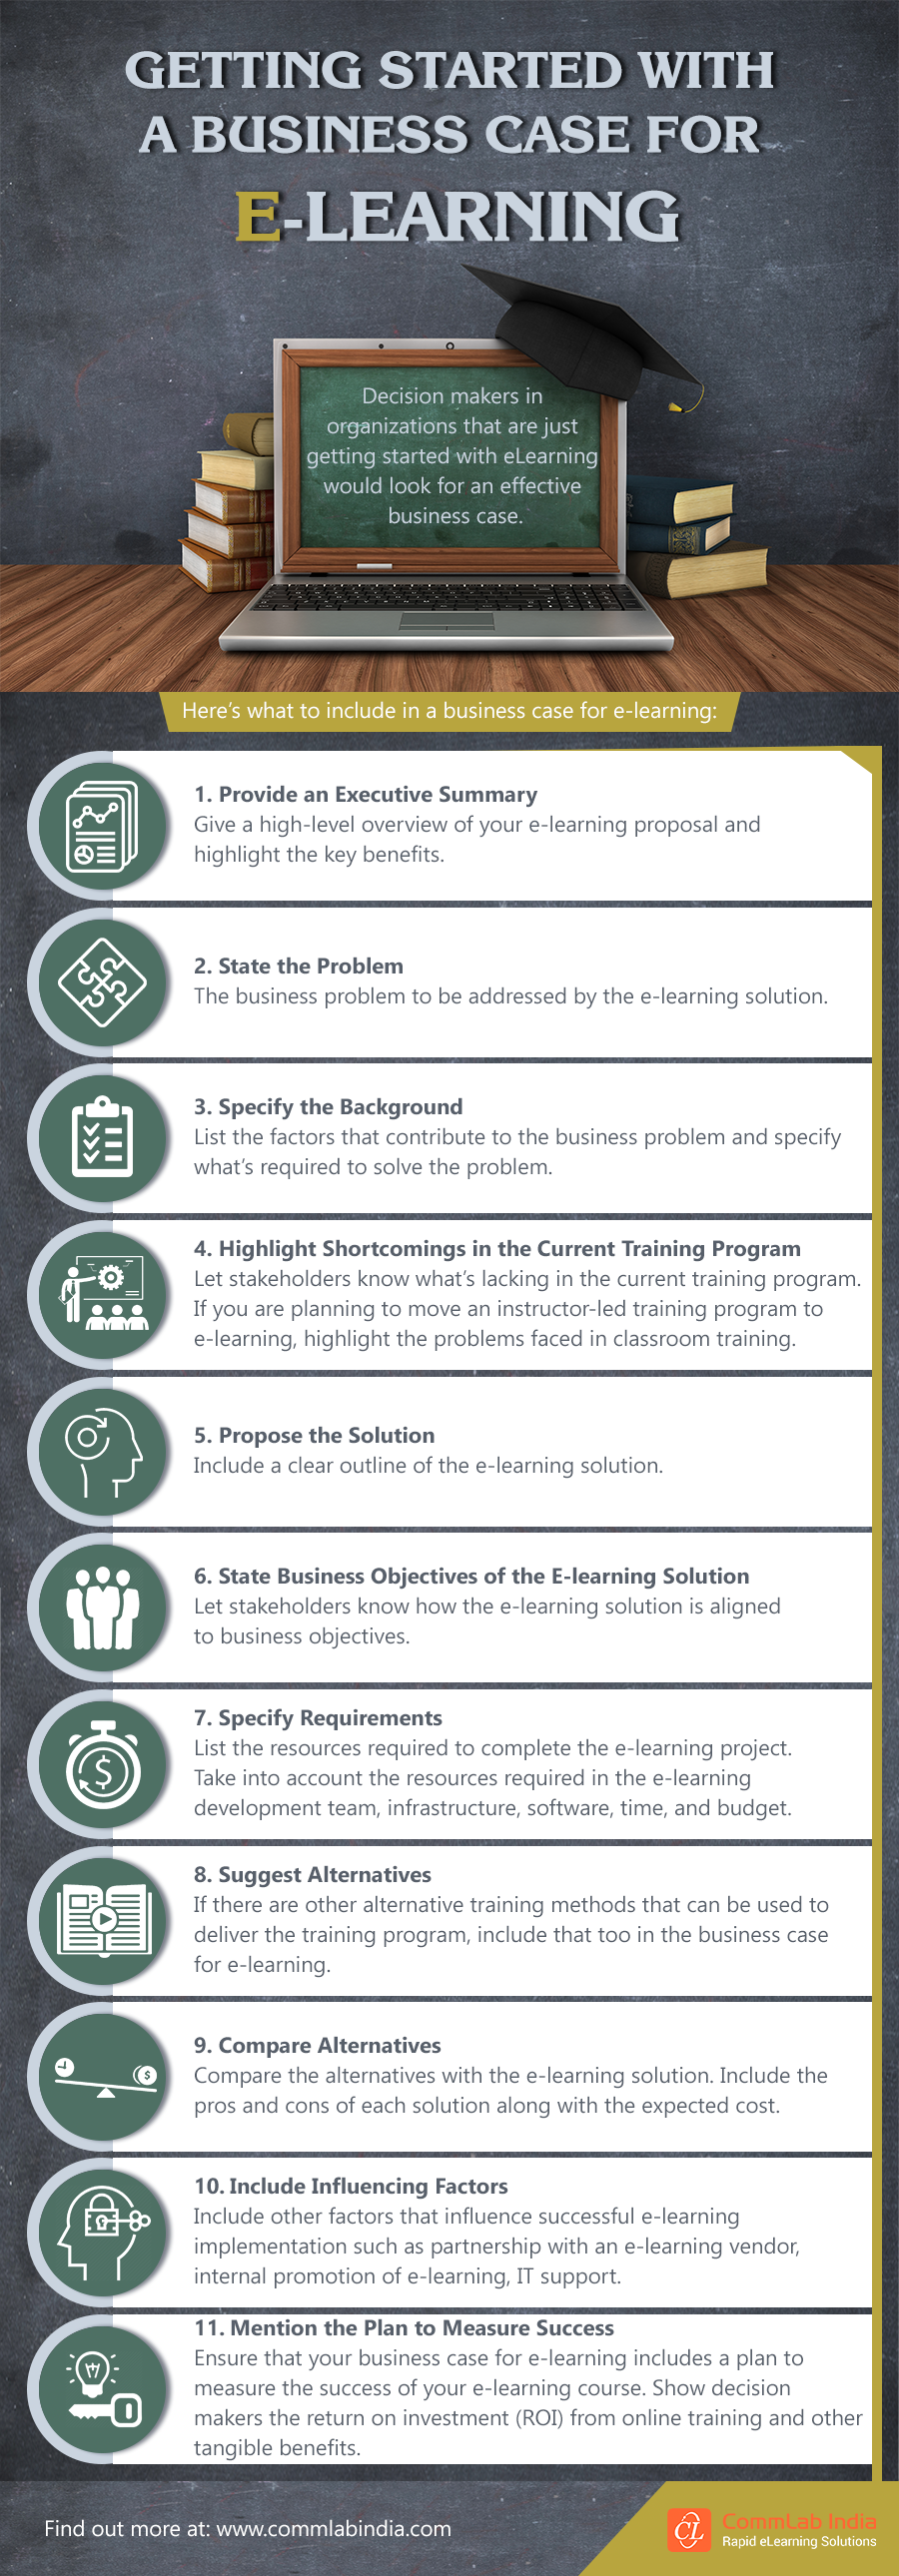 Getting Started with a Business Case for eLearning [Infographic]